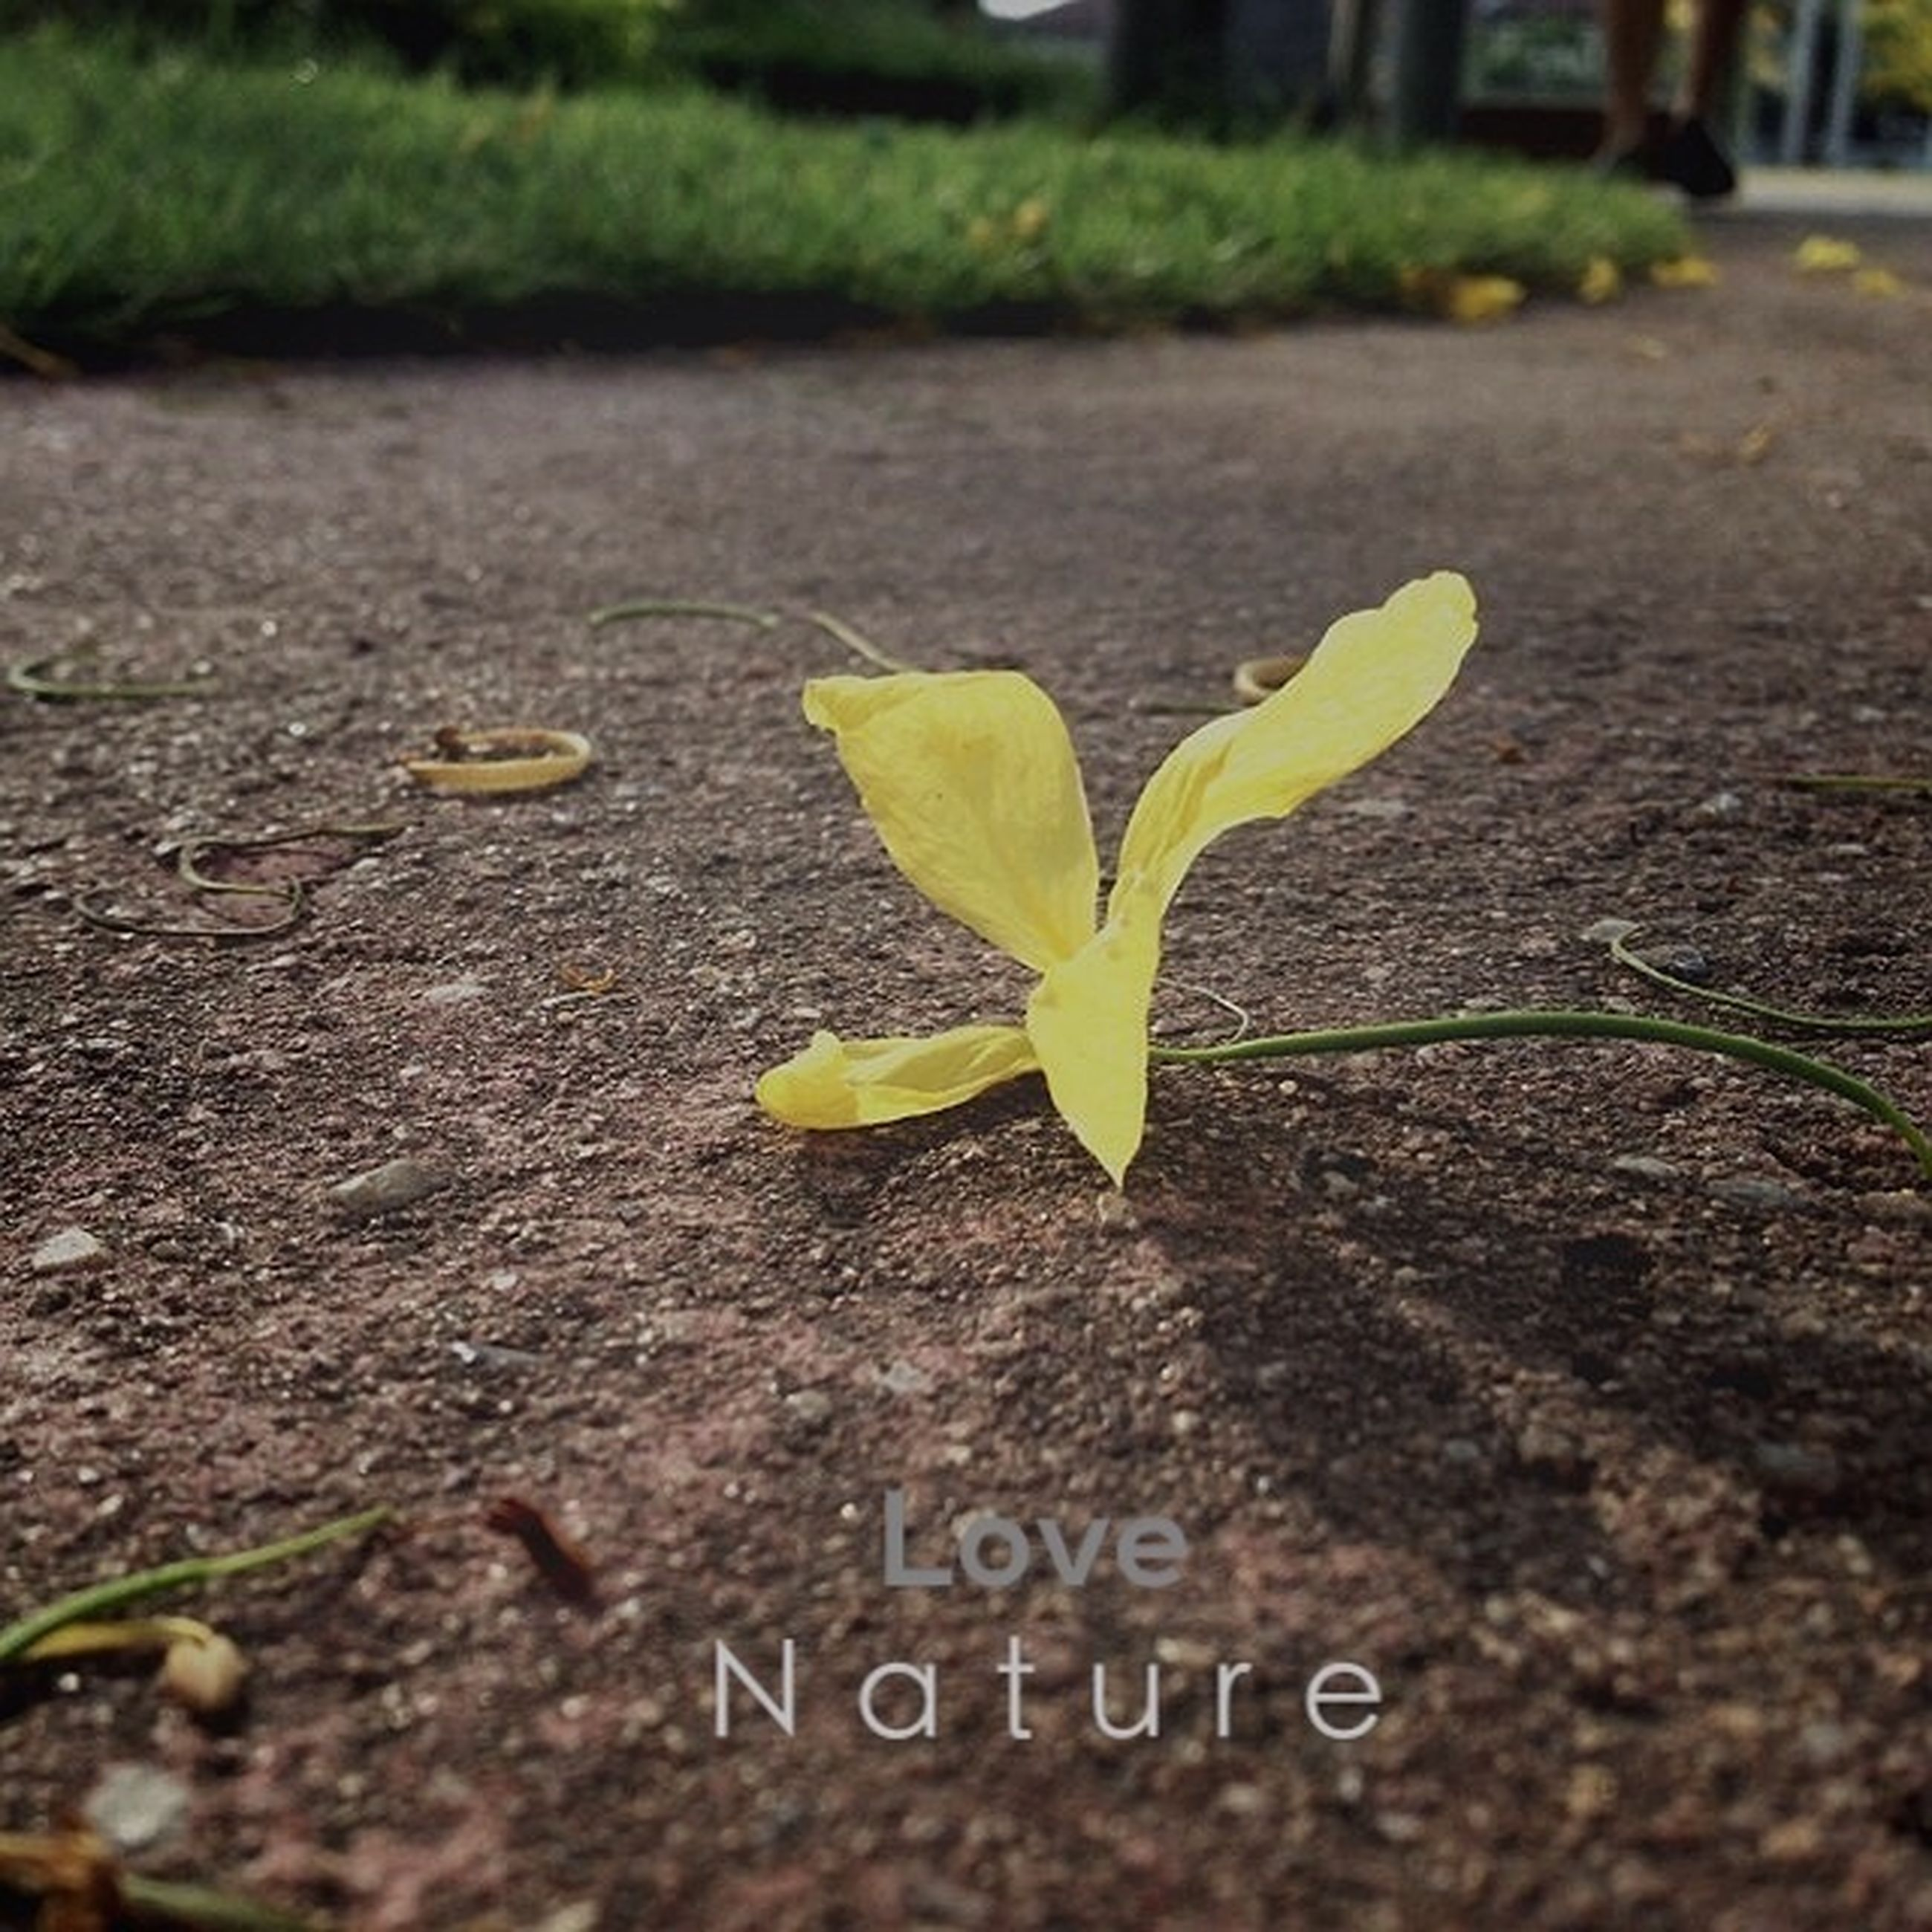 text, leaf, western script, communication, close-up, selective focus, focus on foreground, plant, growth, green color, day, outdoors, nature, street, no people, road, asphalt, field, yellow, ground